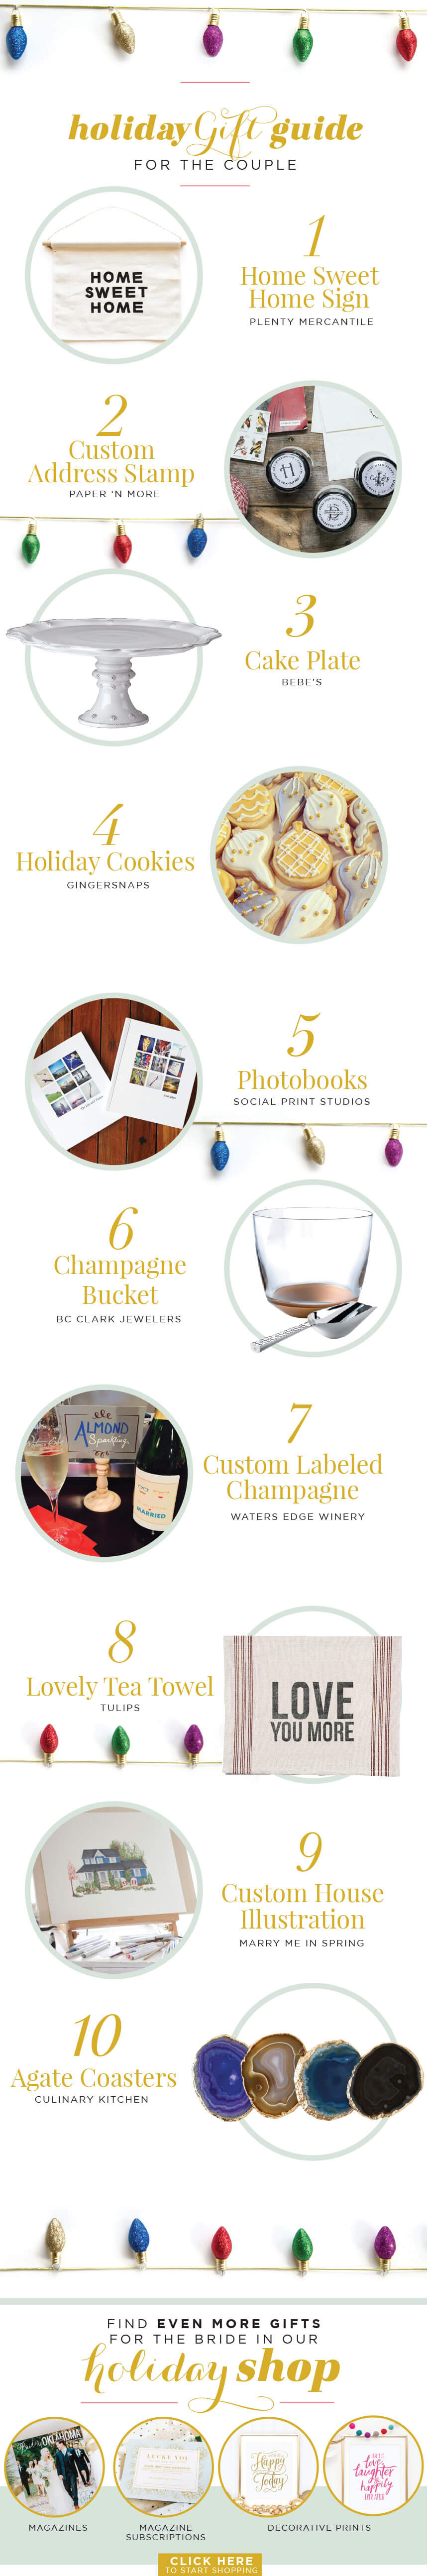 holidaygiftguide_blogs_COUPLES_BOO